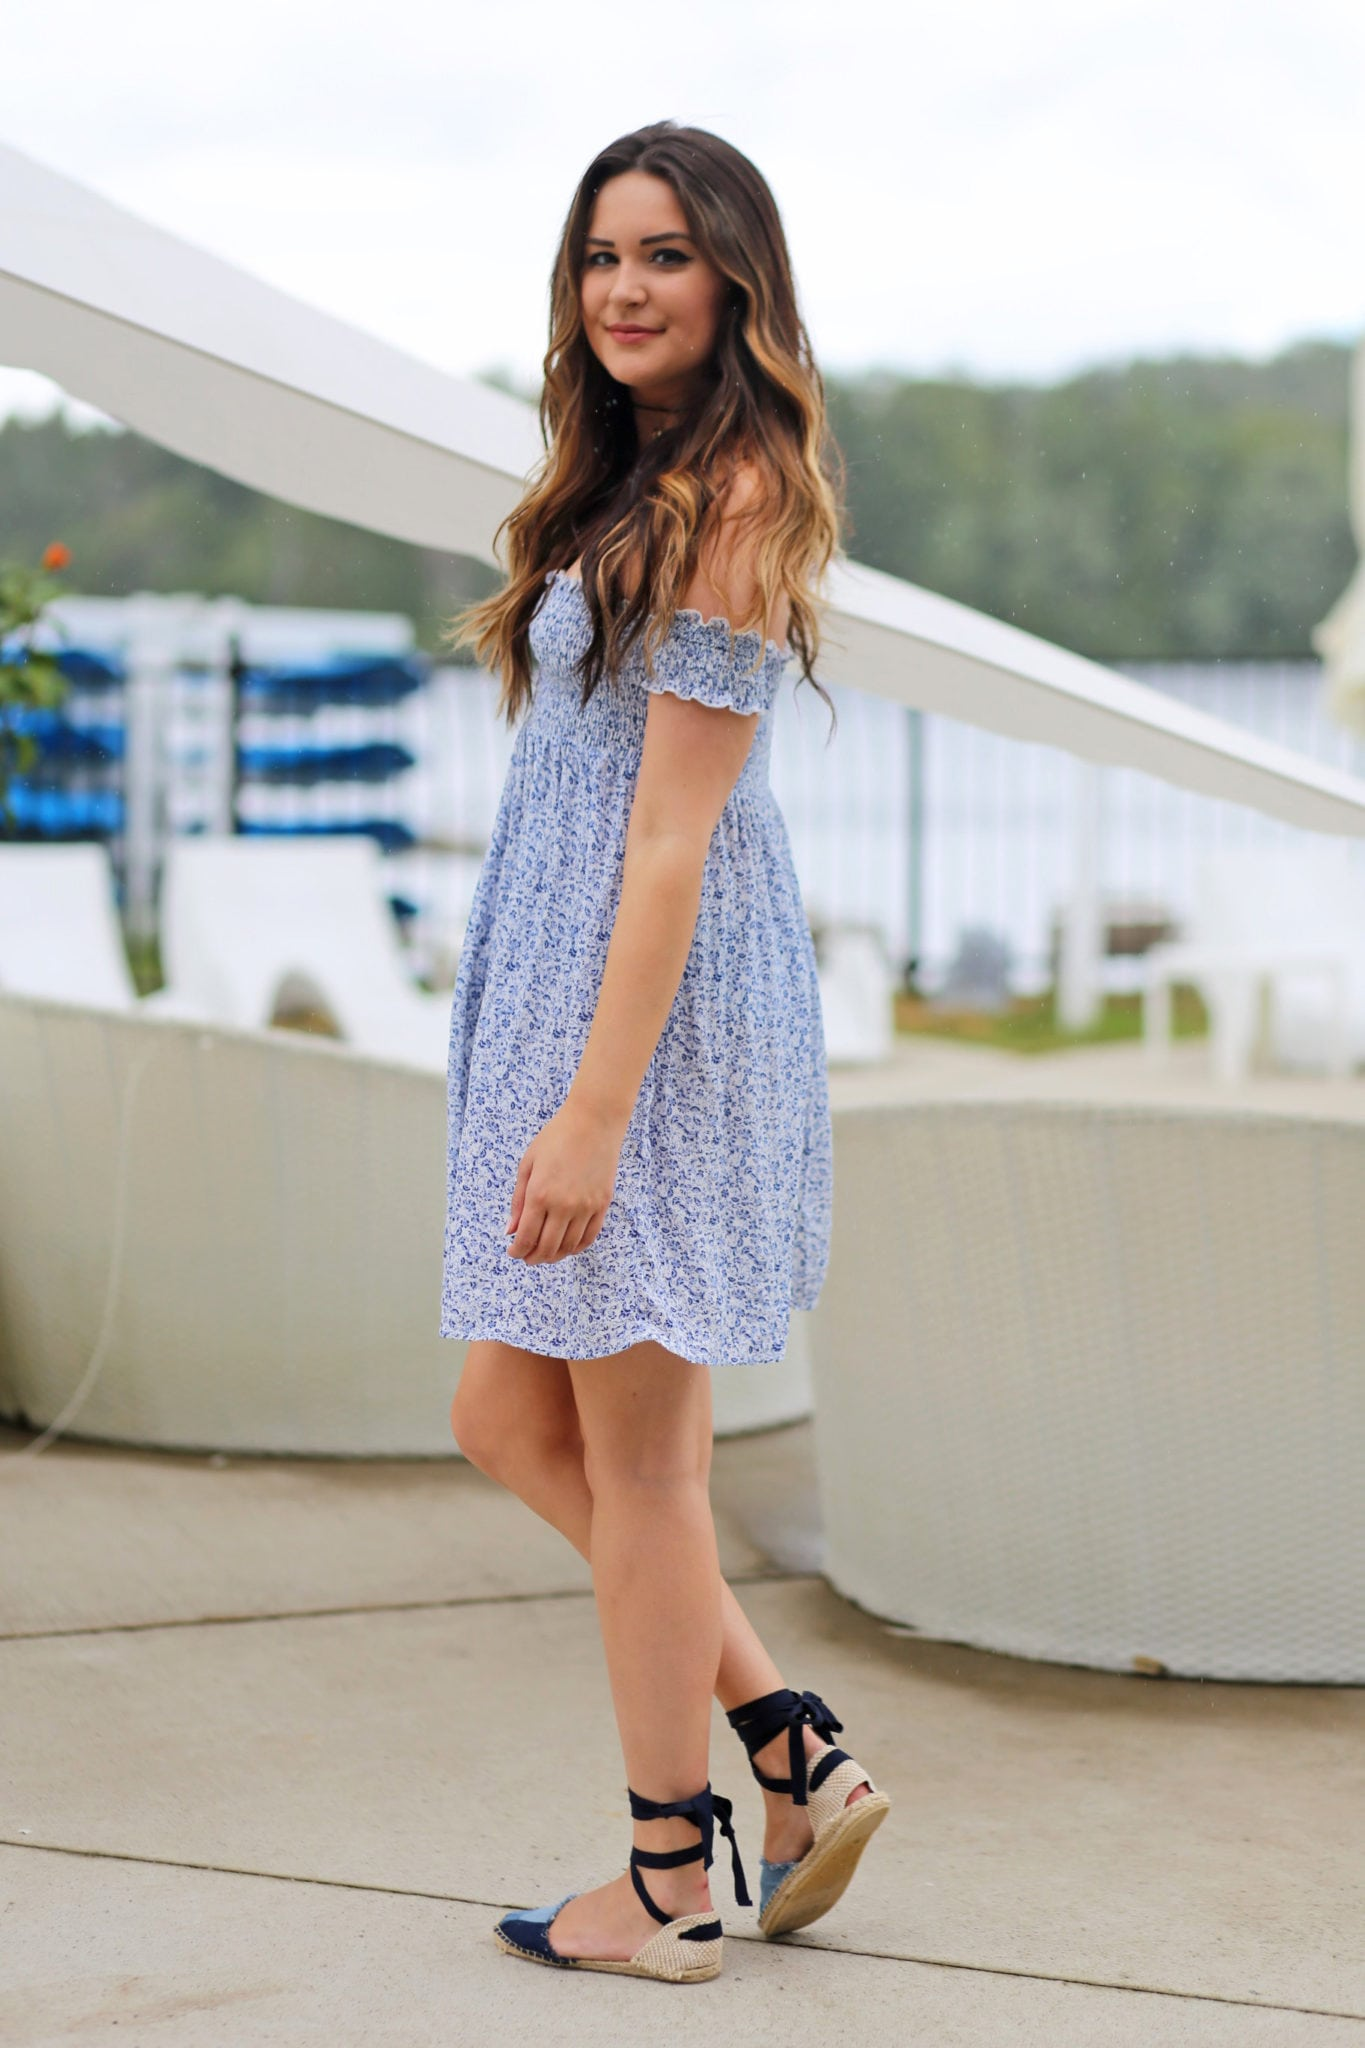 Mash Elle blogger |pool | blue white floral dress |blue shoes | summer outfit | Esterel resort